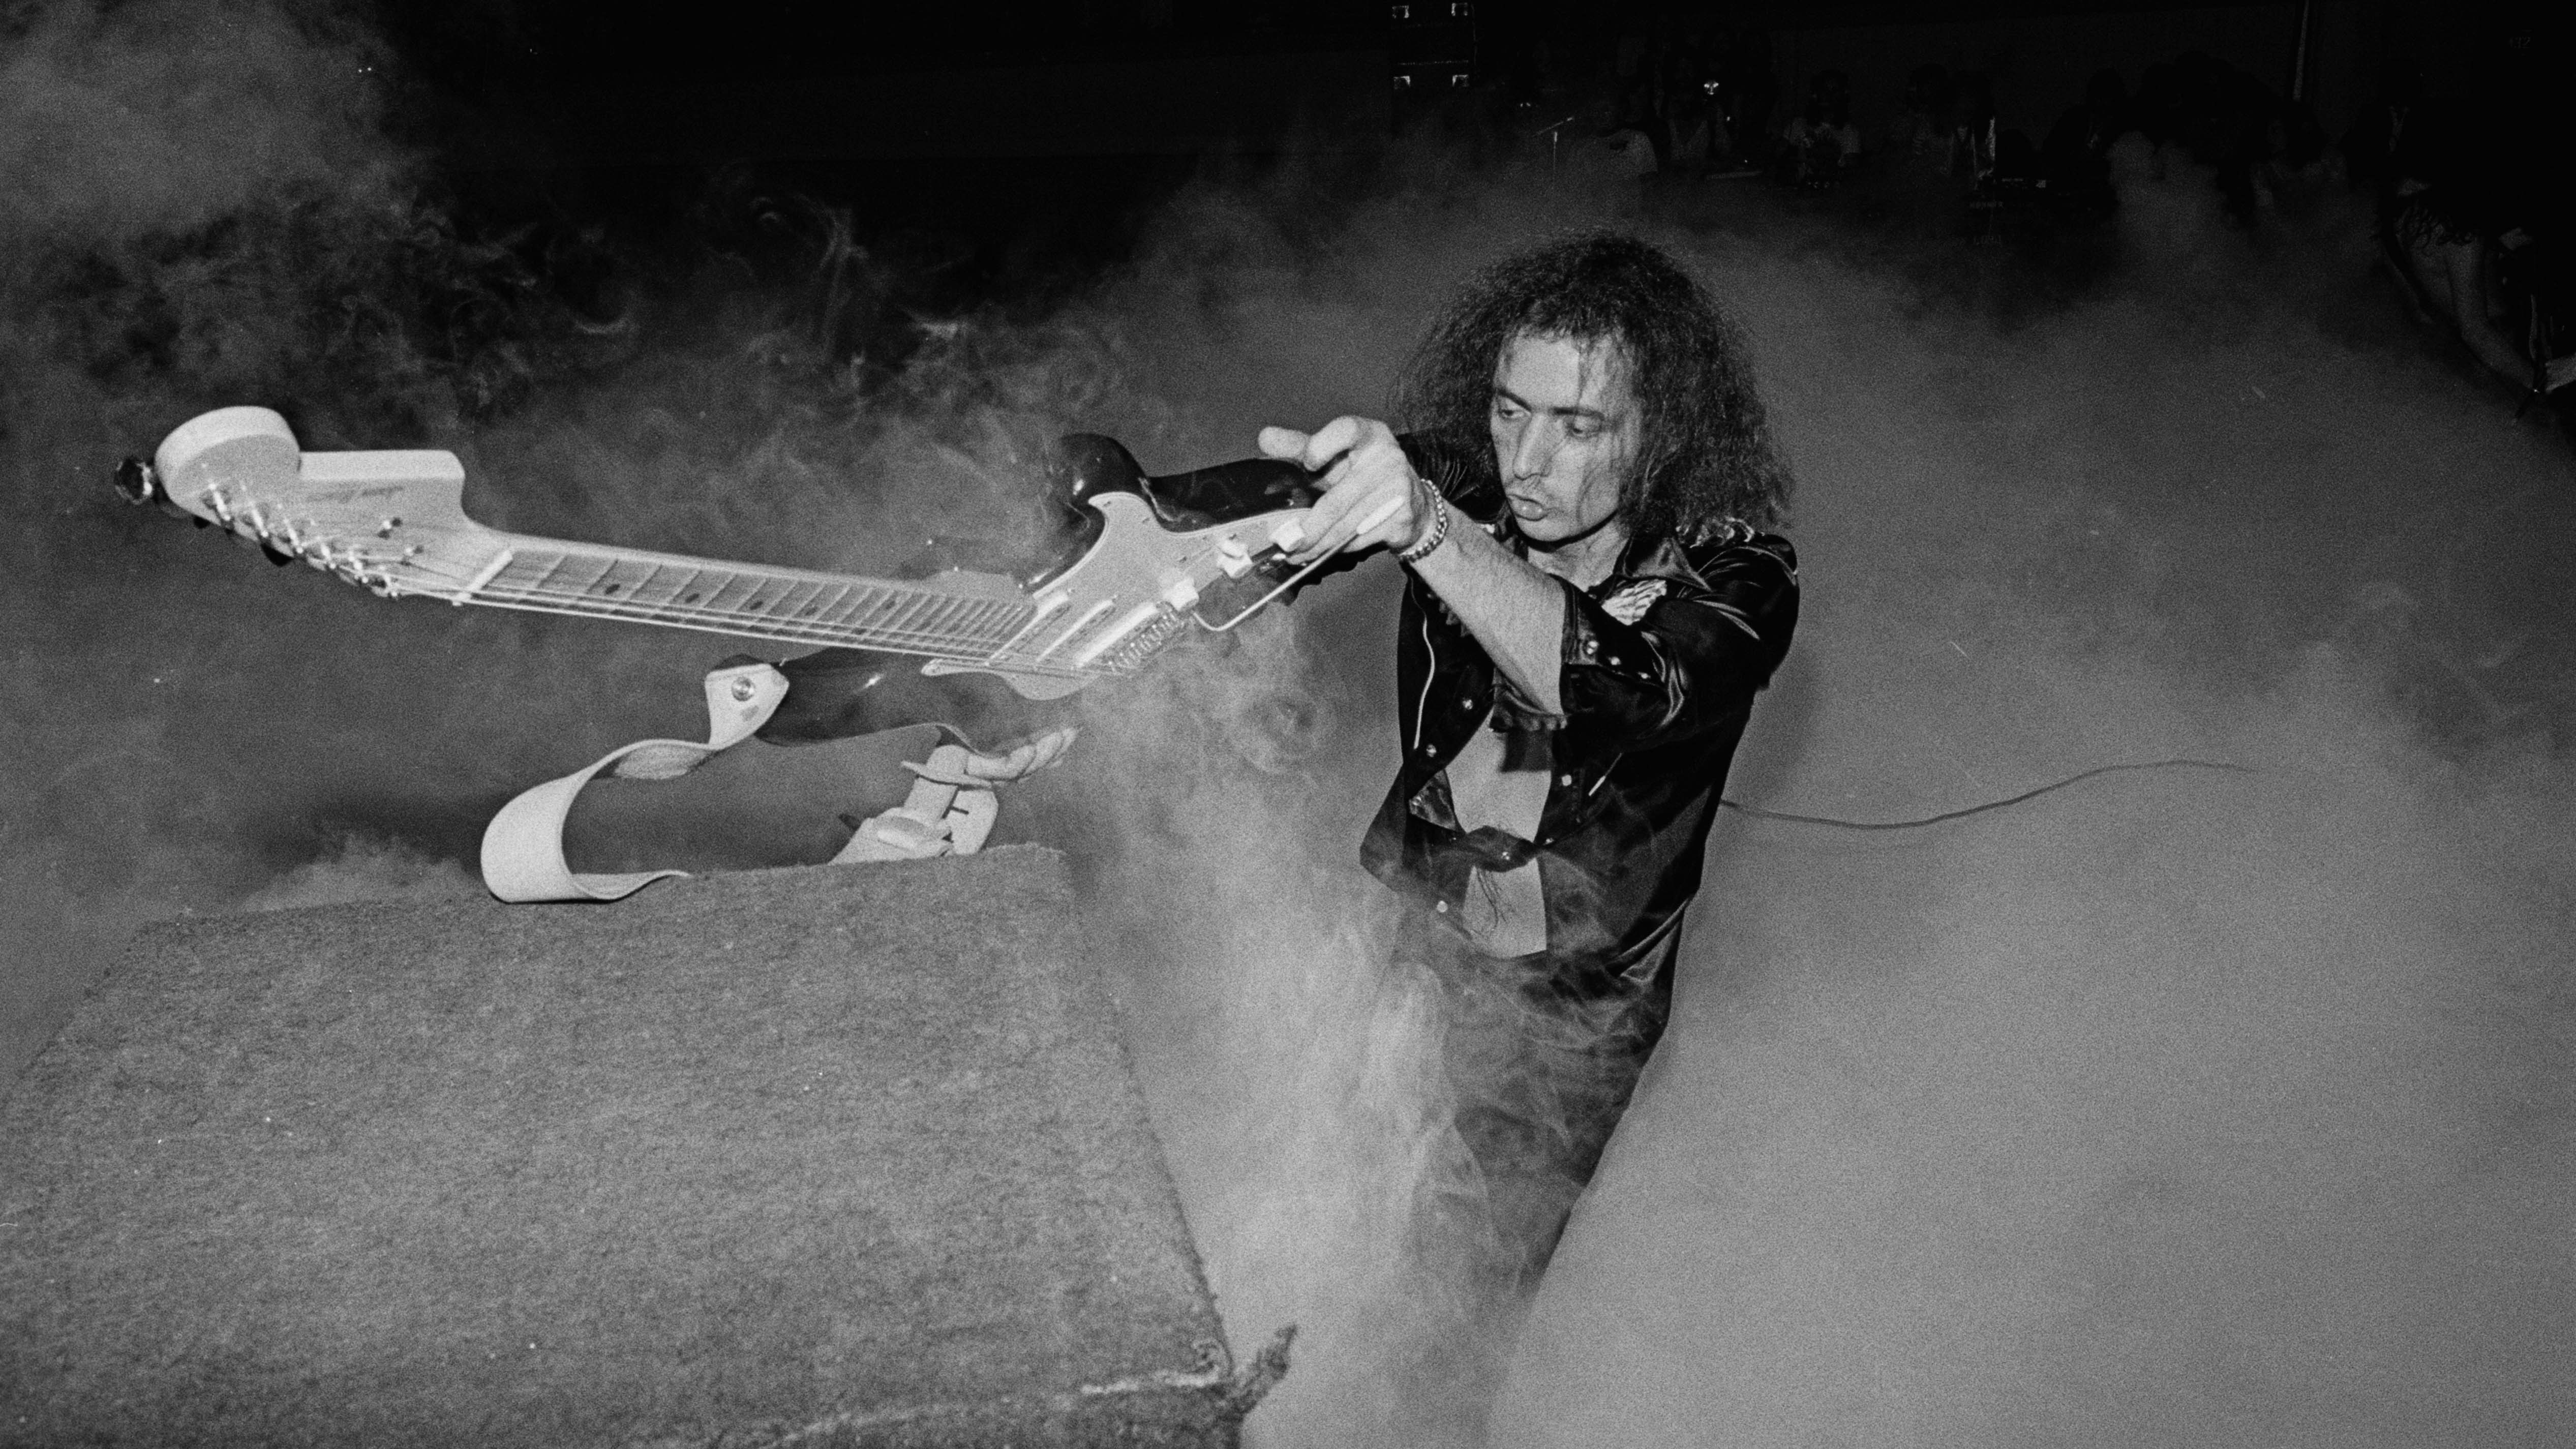 5 songs guitarists need to hear by… Ritchie Blackmore (that aren't Smoke On The Water) | MusicRadar